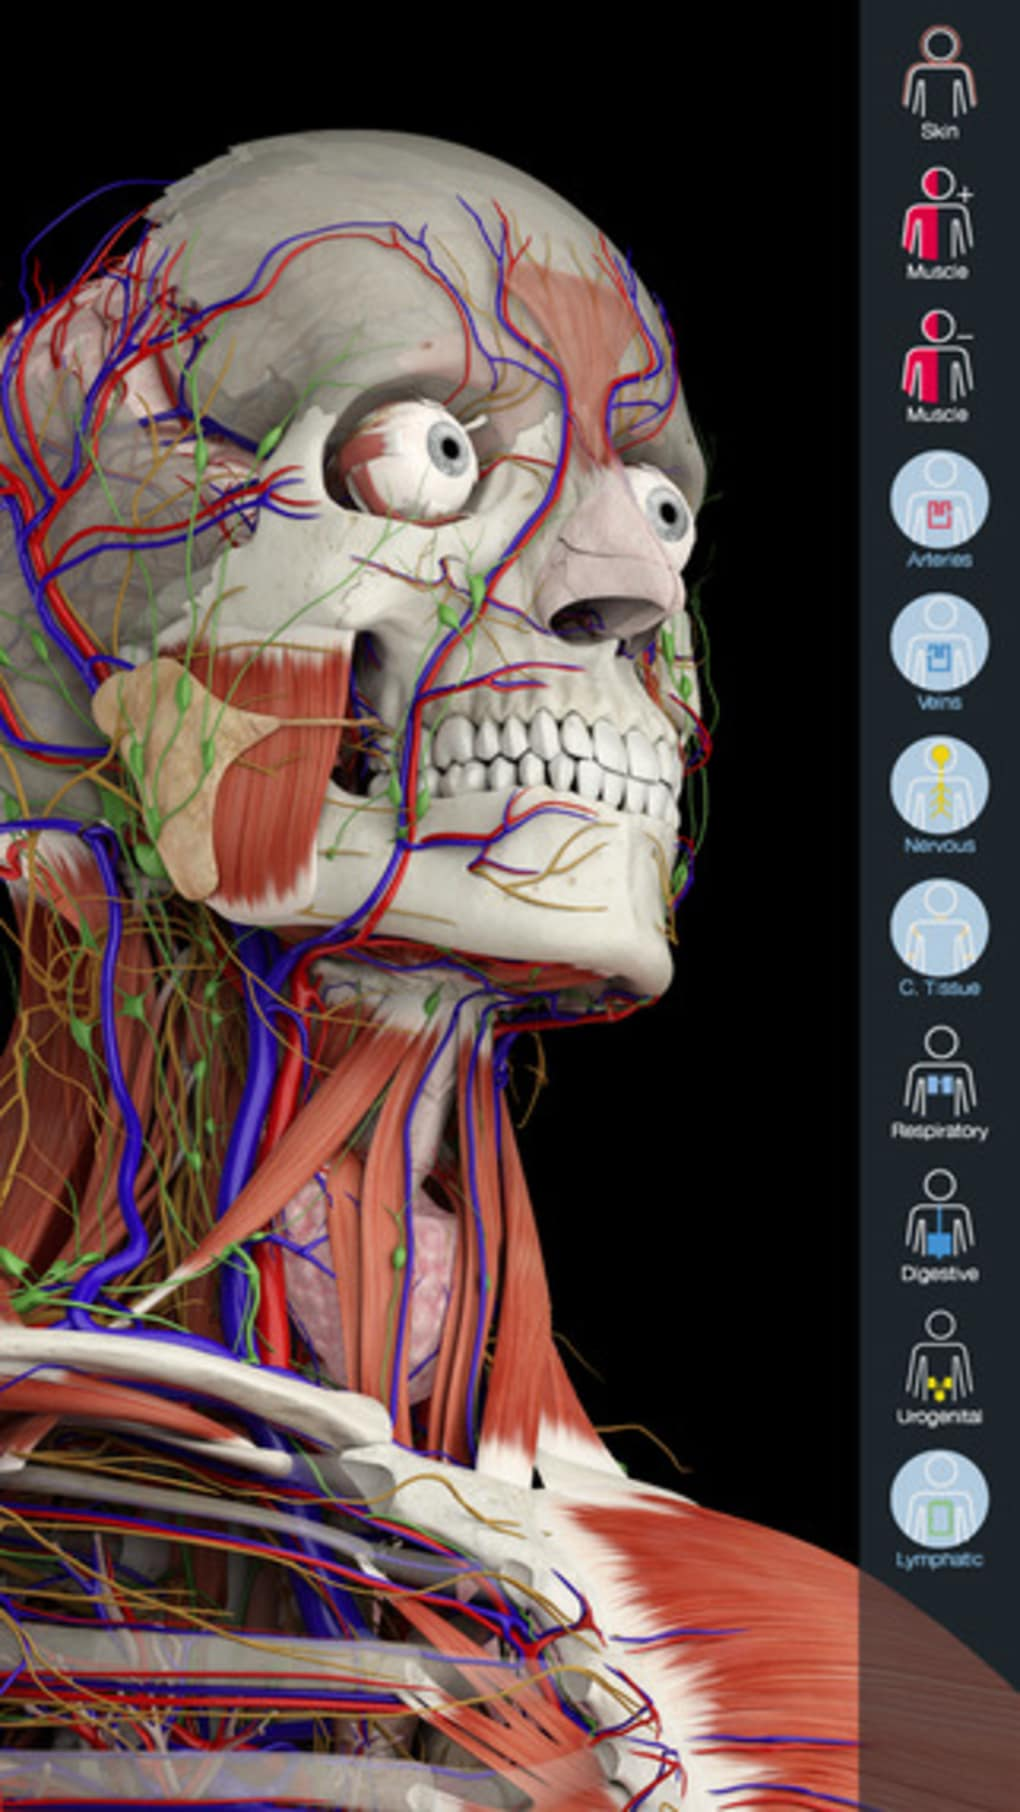 Essential Anatomy for iPhone - Download